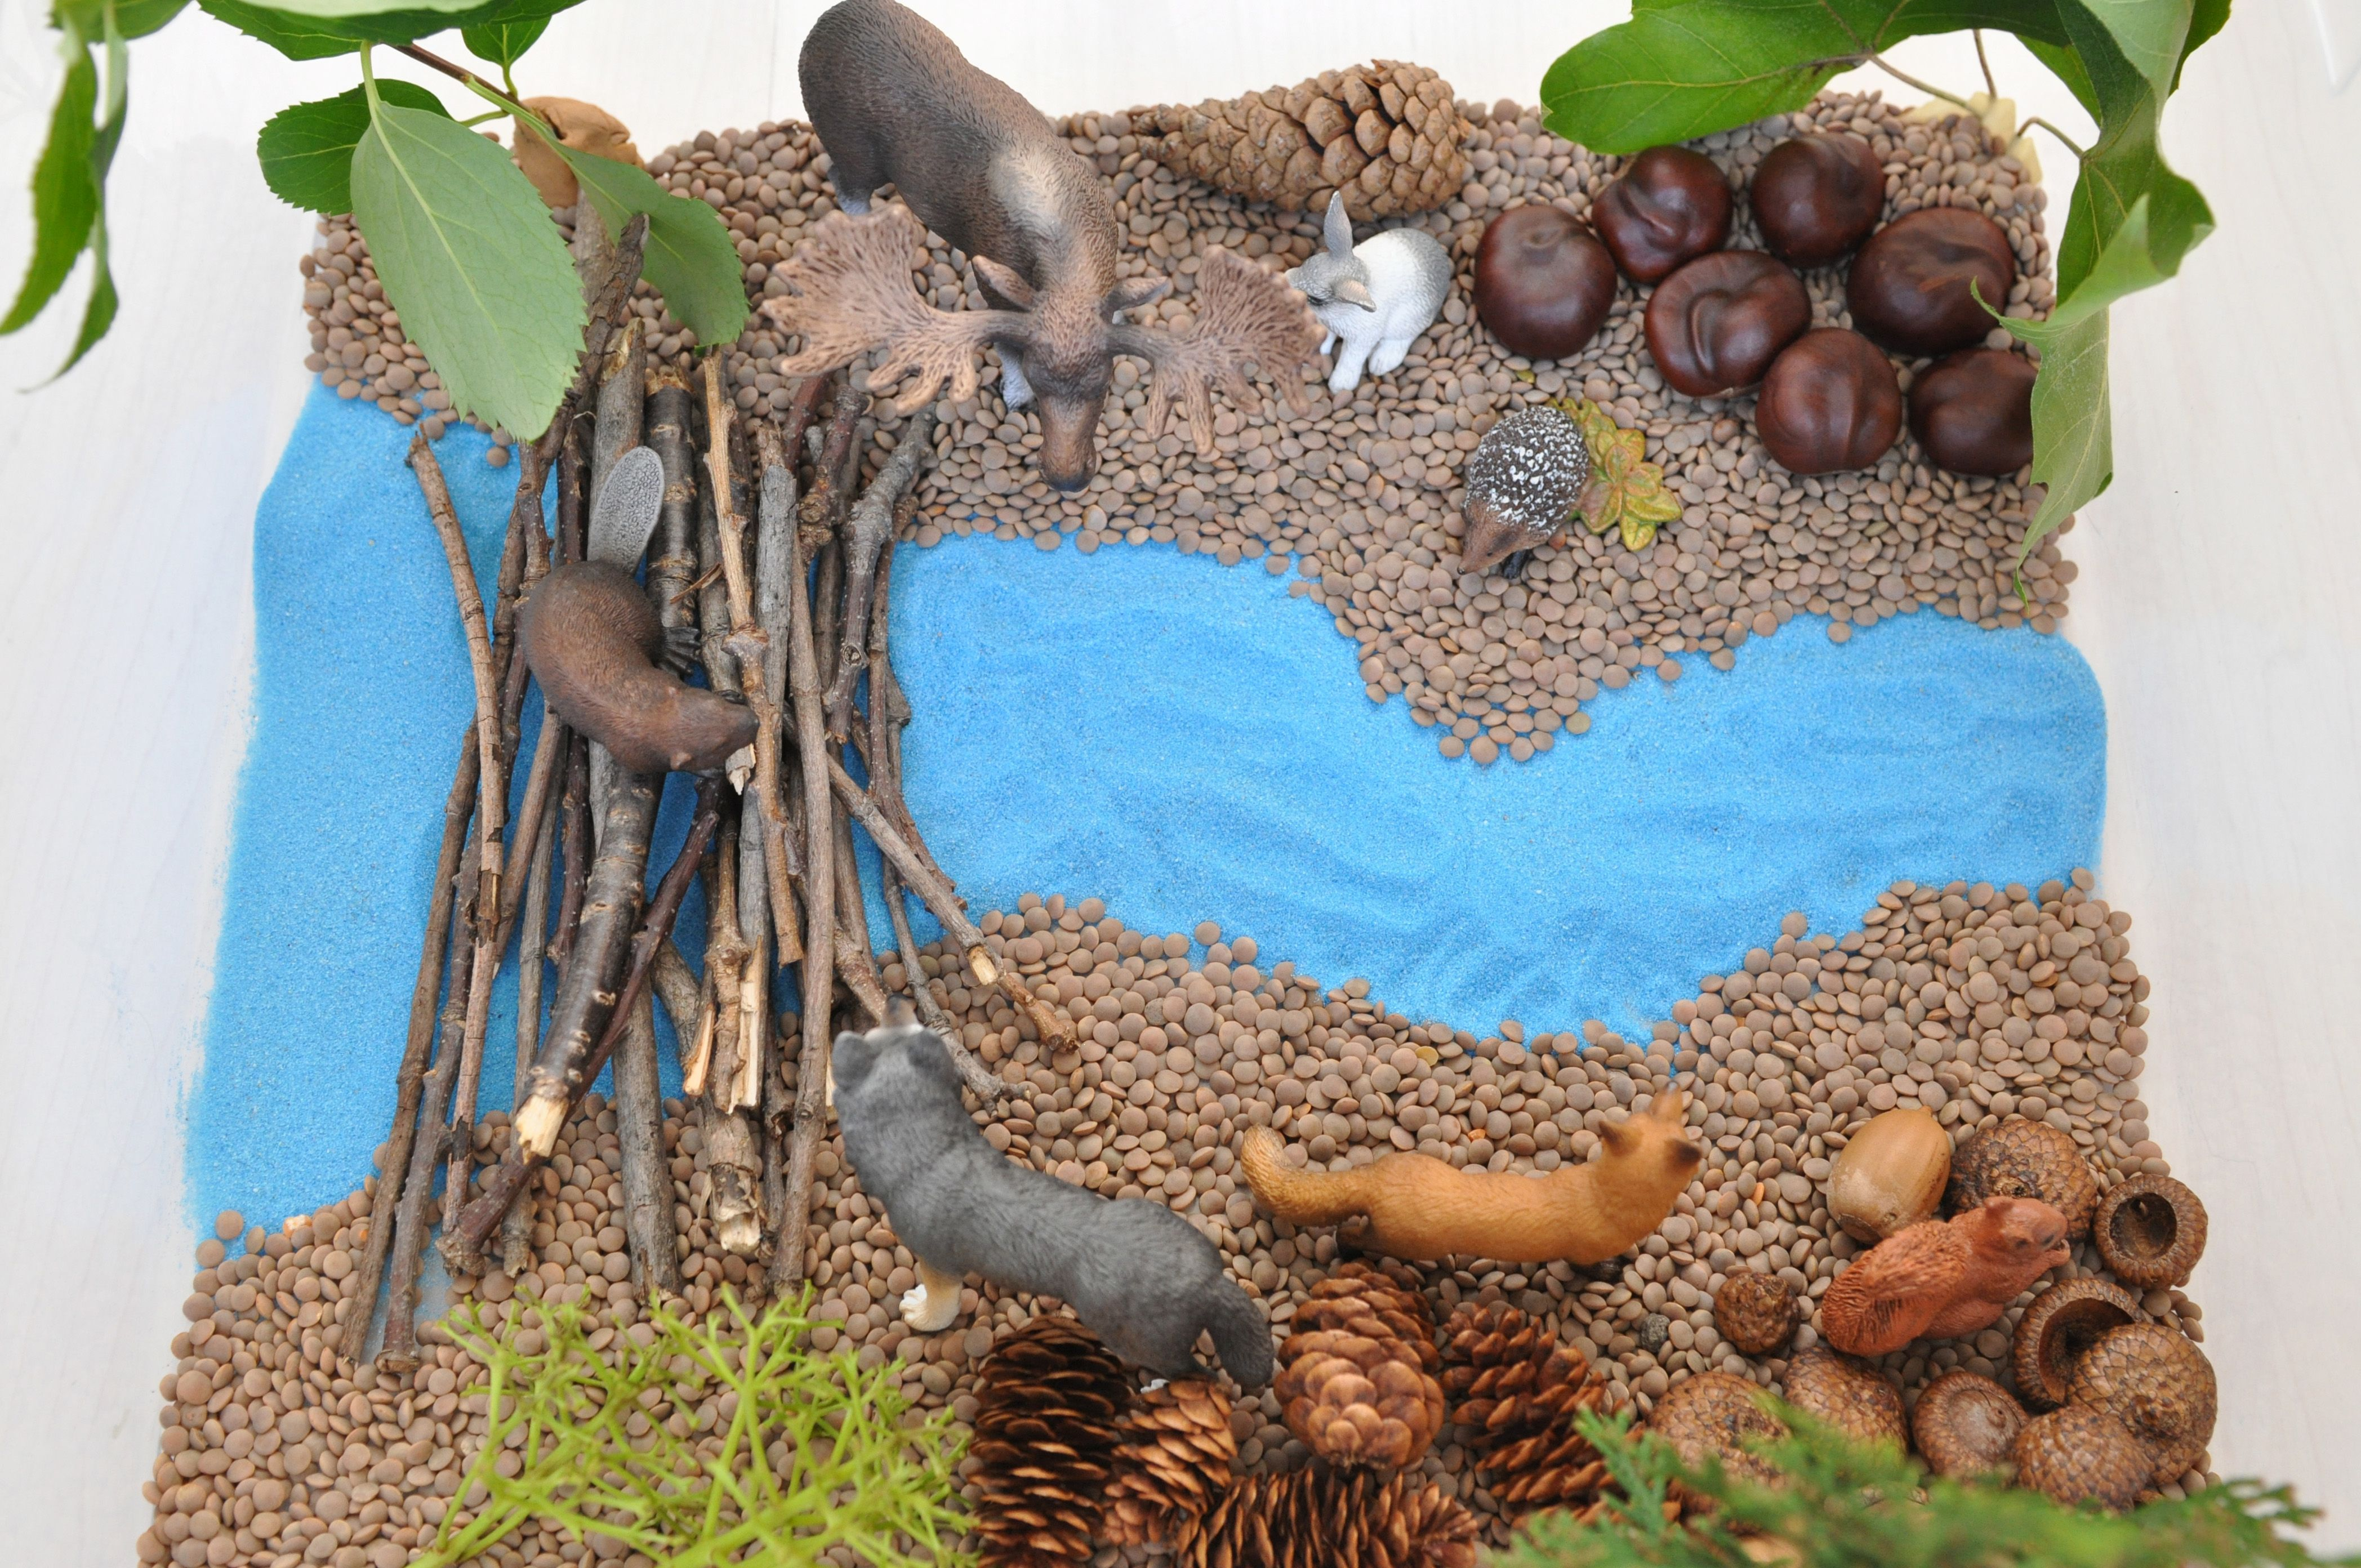 hight resolution of make a beaver dam out of sticks and set up a forest with animals around it sensory bin ingredients lentils blue sand sticks chestnuts acorn caps